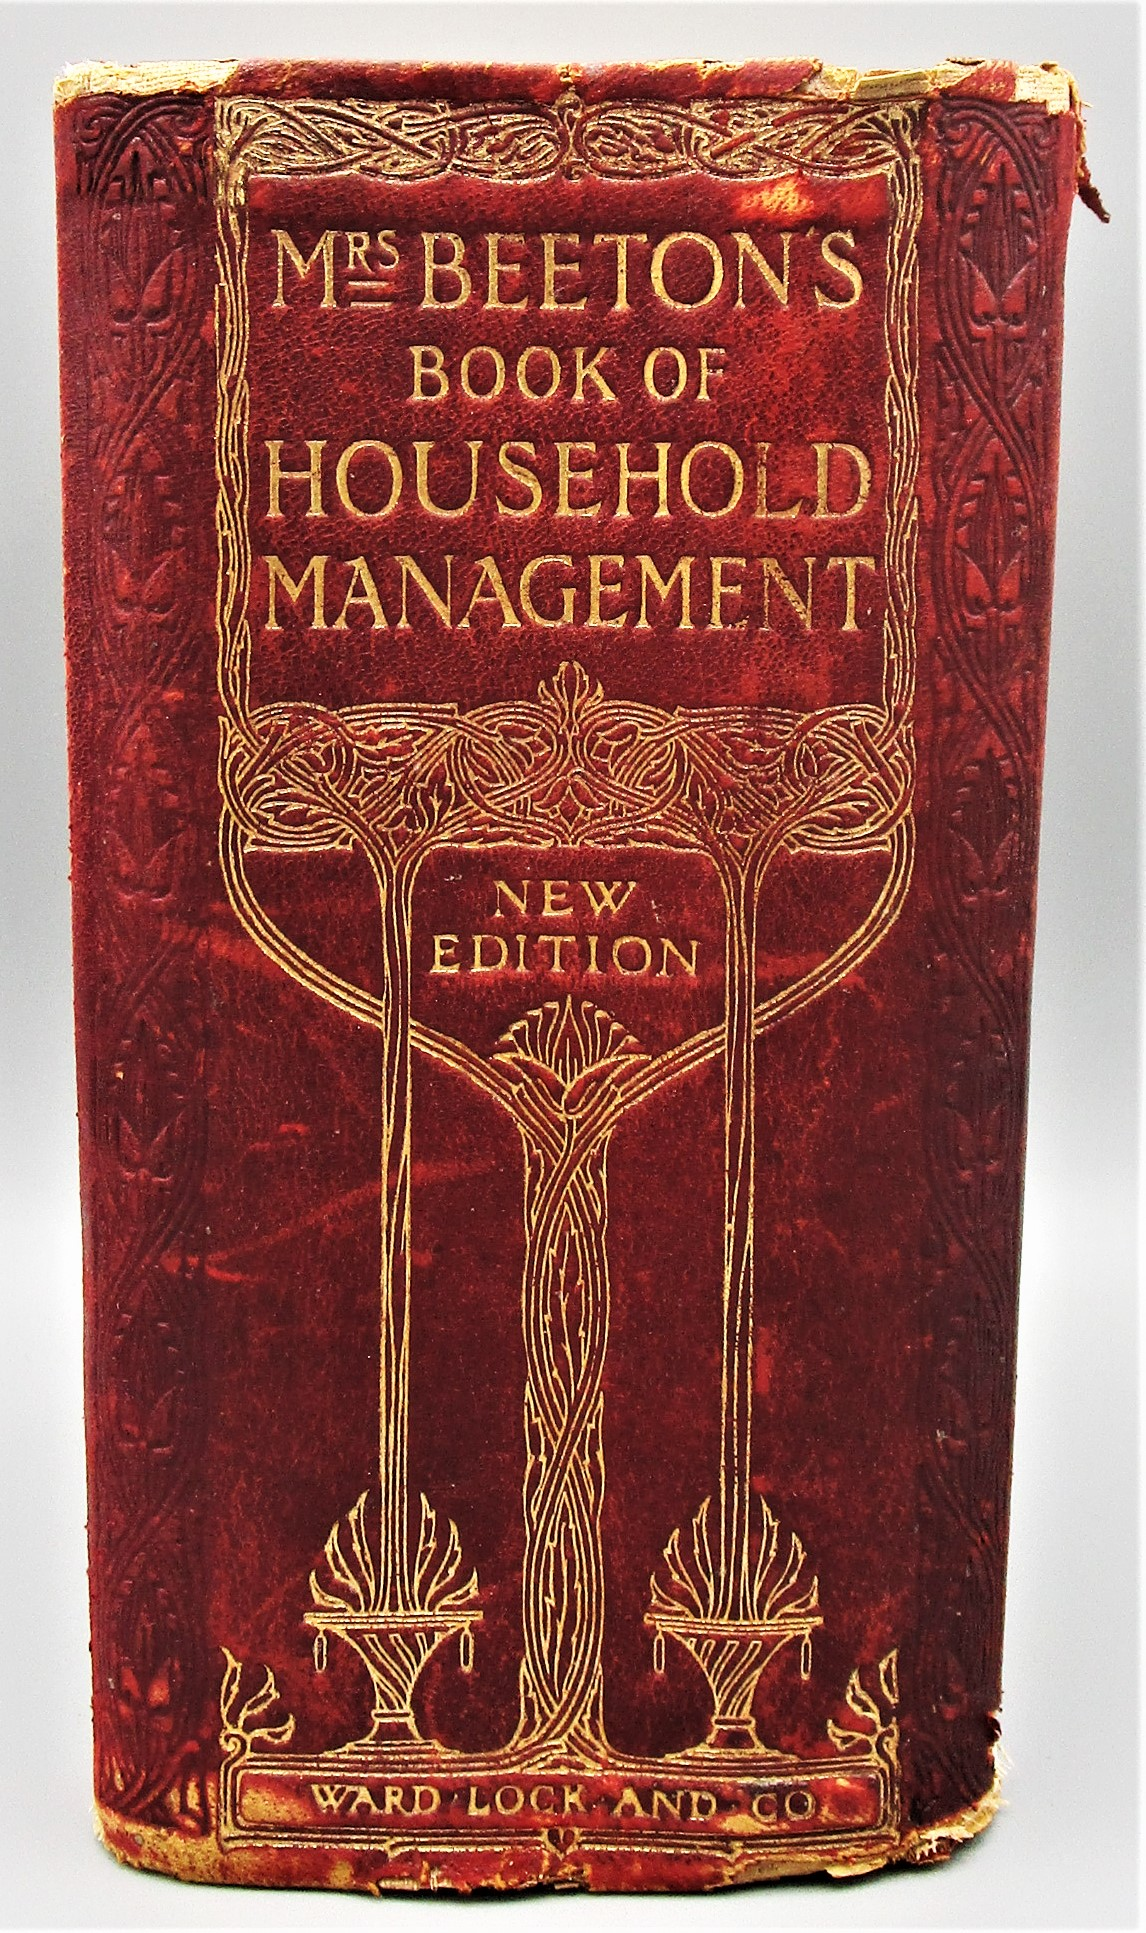 MRS BEETON'S BOOK OF HOUSEHOLD MANAGEMENT - 1906